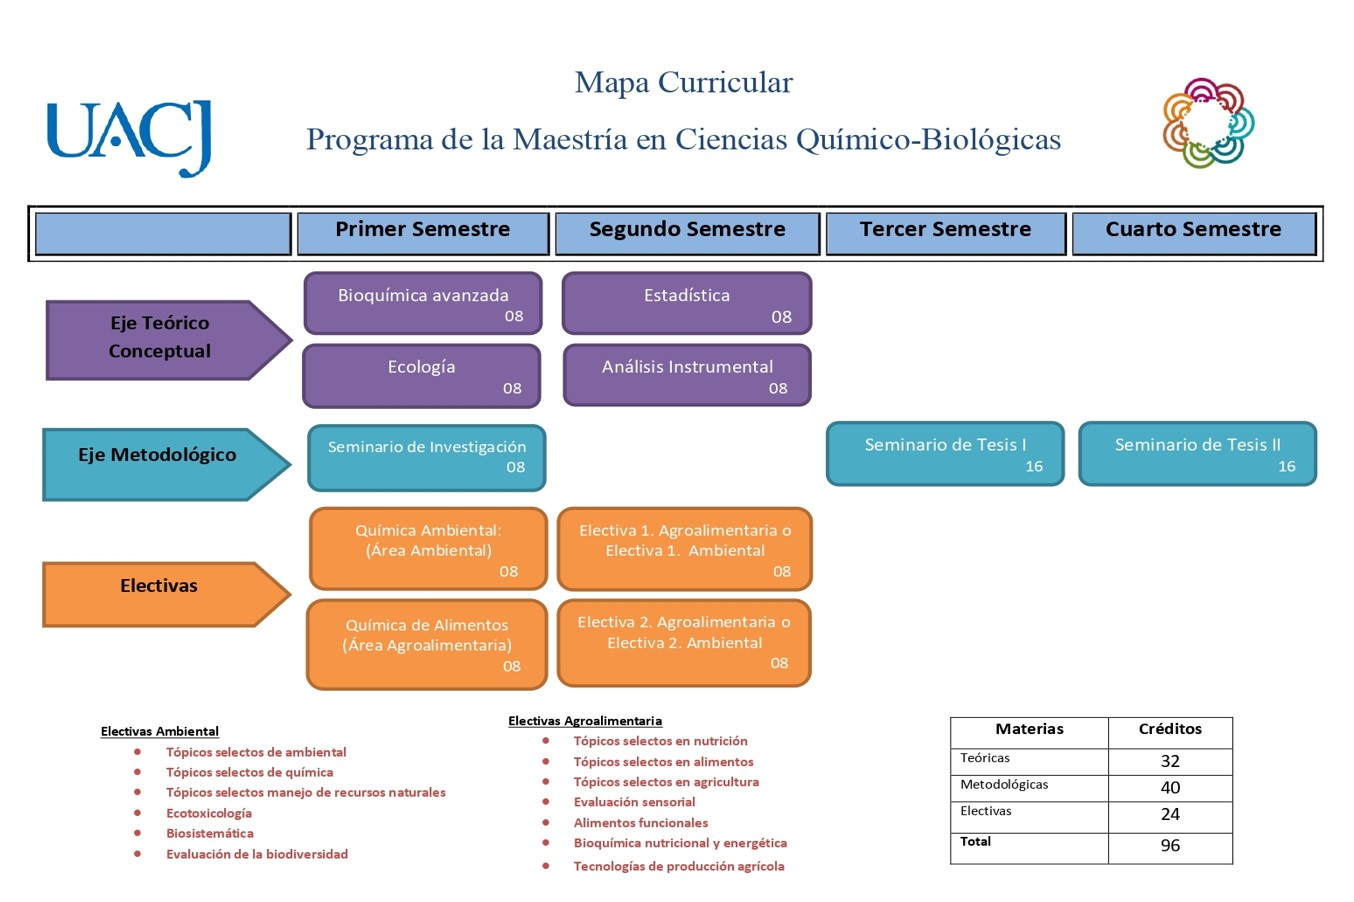 Mapa curricular quimico-biologas 2018